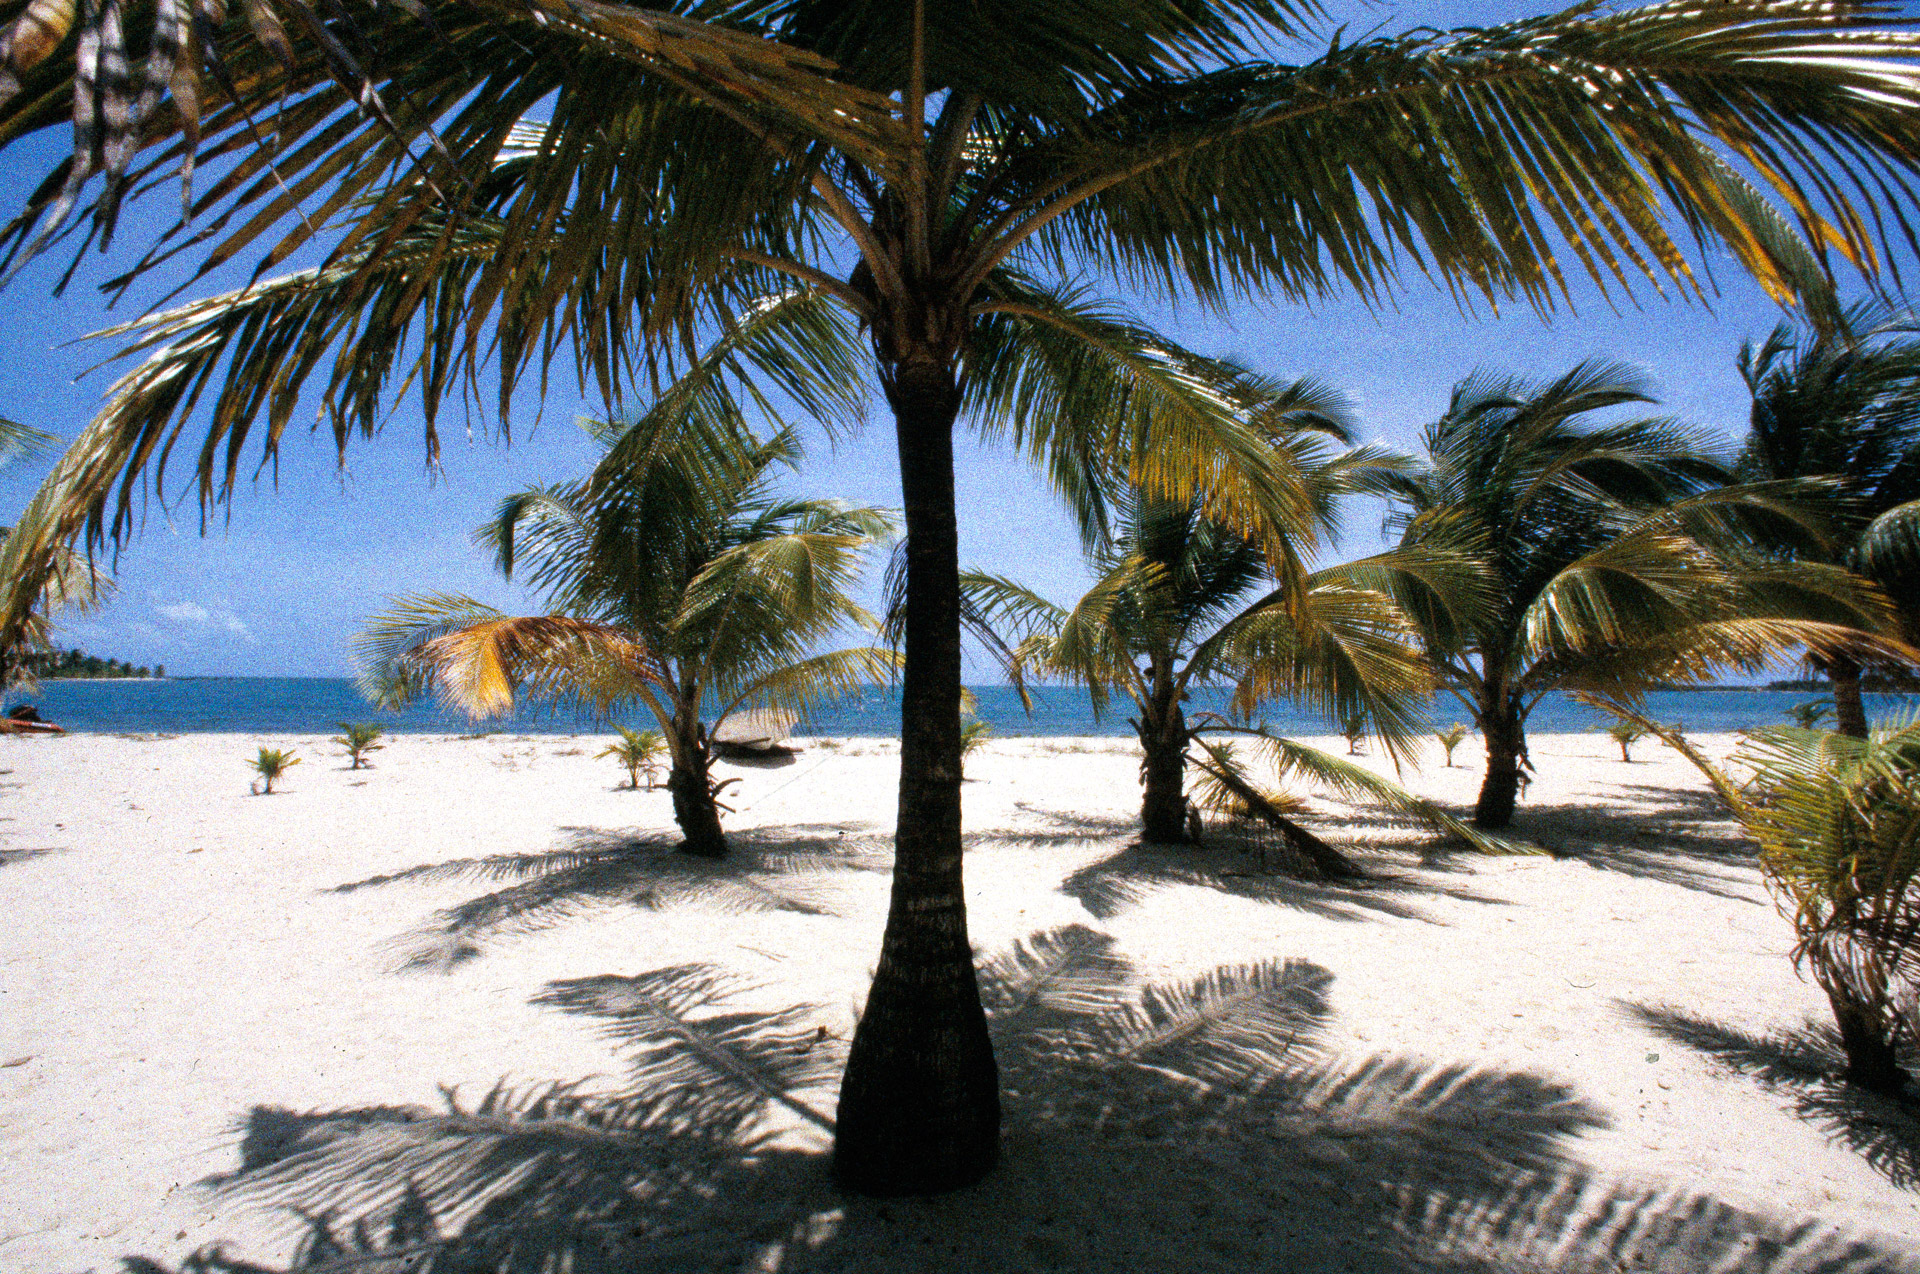 Coconut palms on the beach in Placencia, Belize